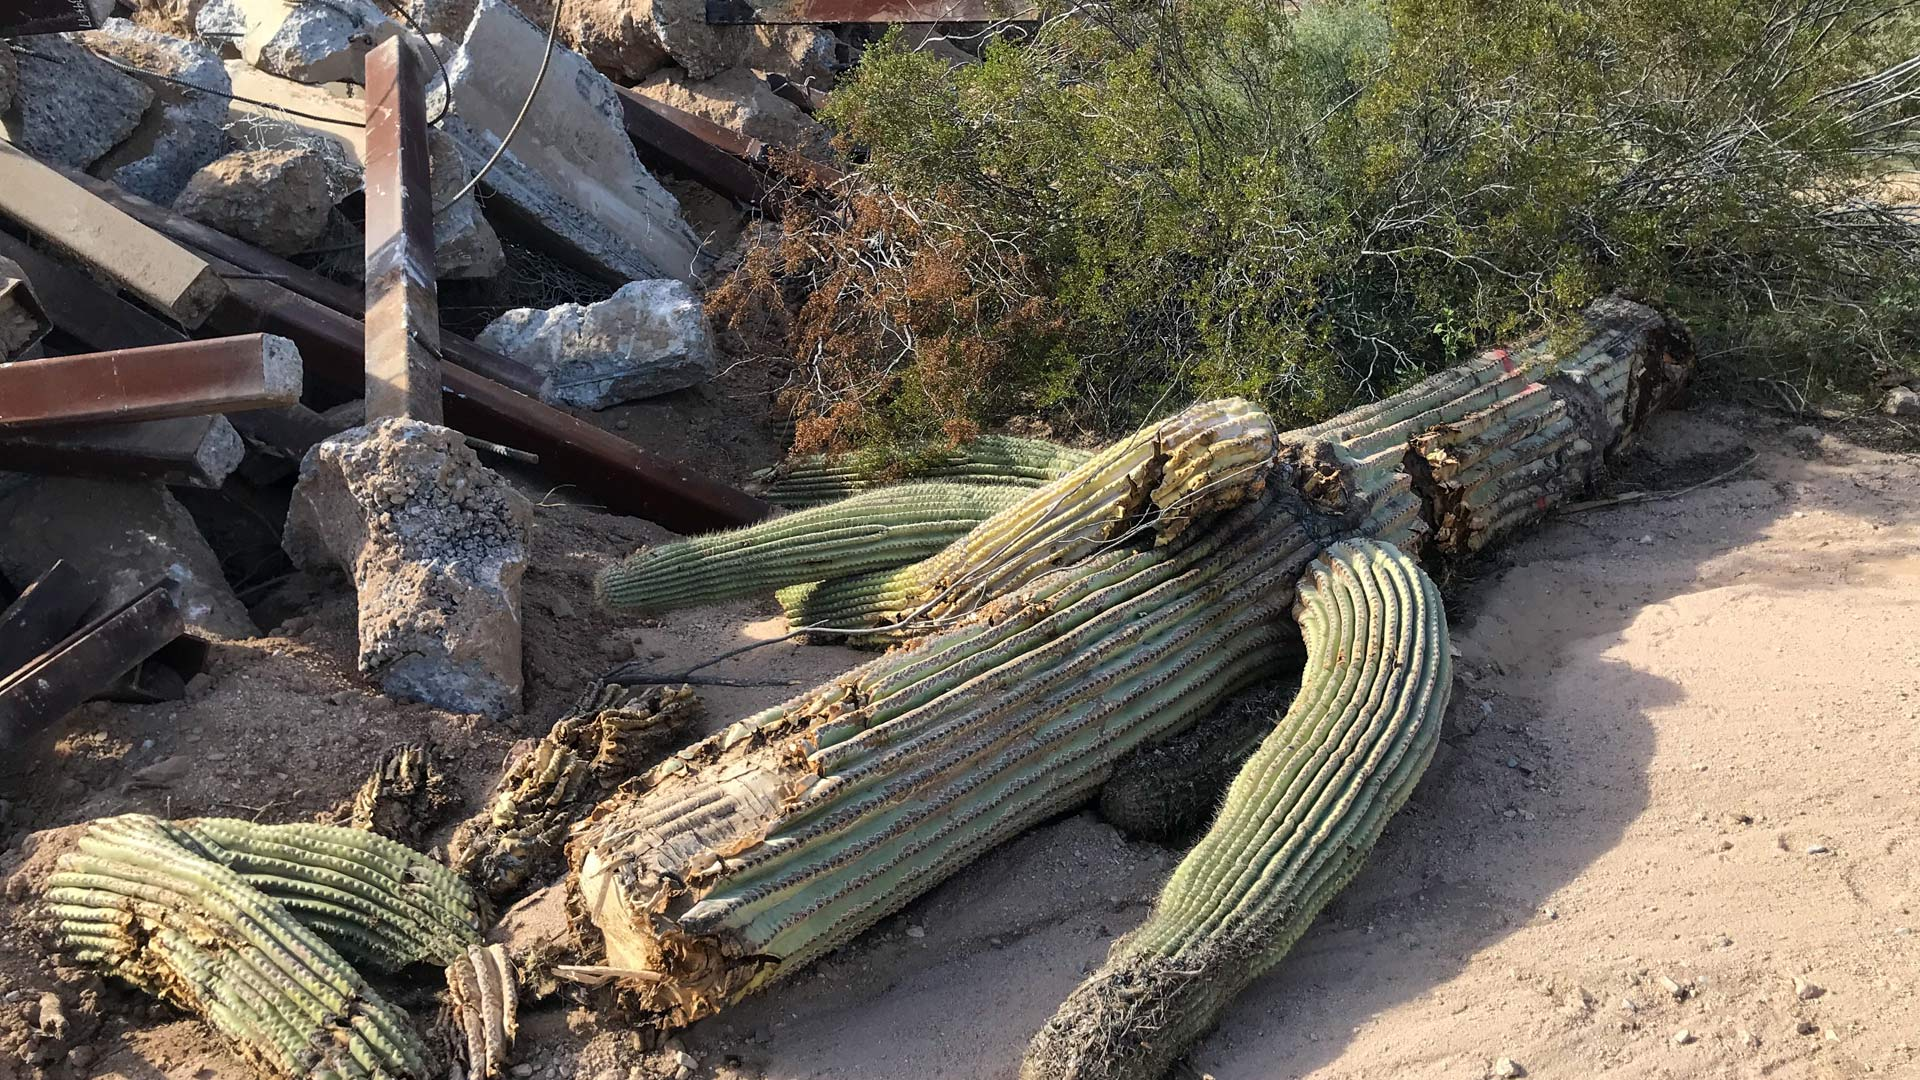 A toppled saguaro in Organ Pipe Cactus National Monument on December 21, 2019.